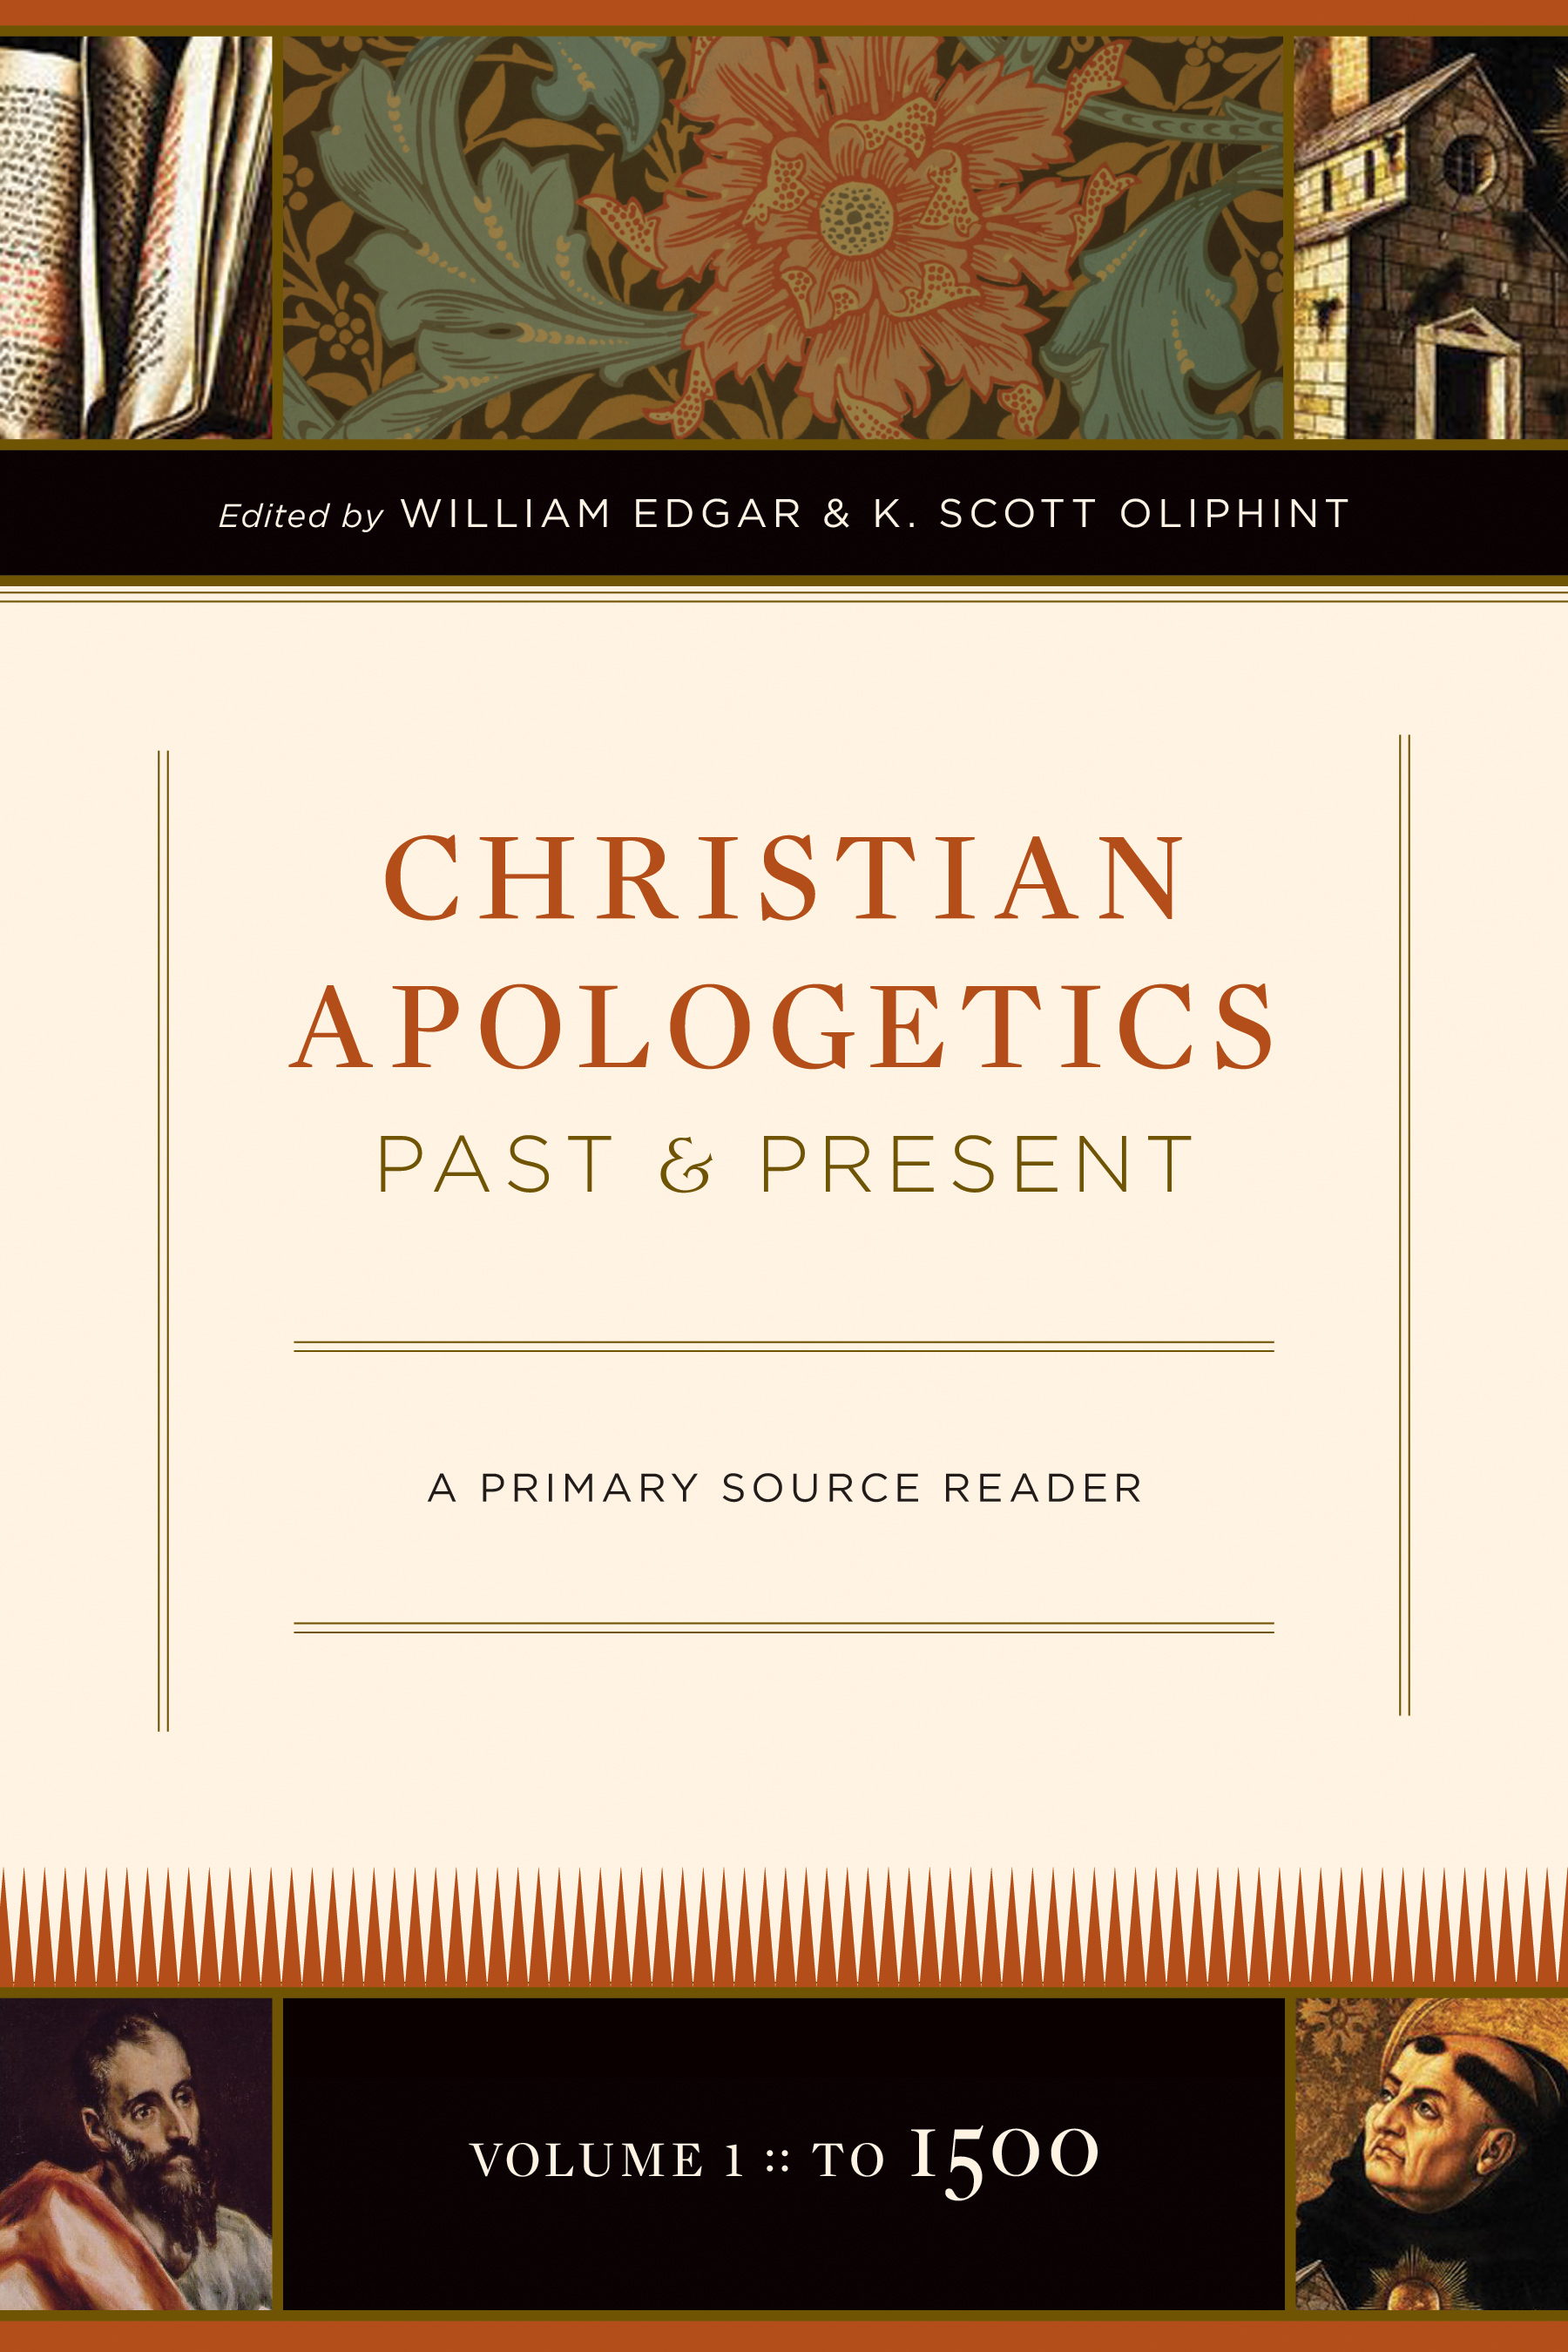 Christian Apologetics Past and Present (Volume 1, To 1500) A Primary Source Reader